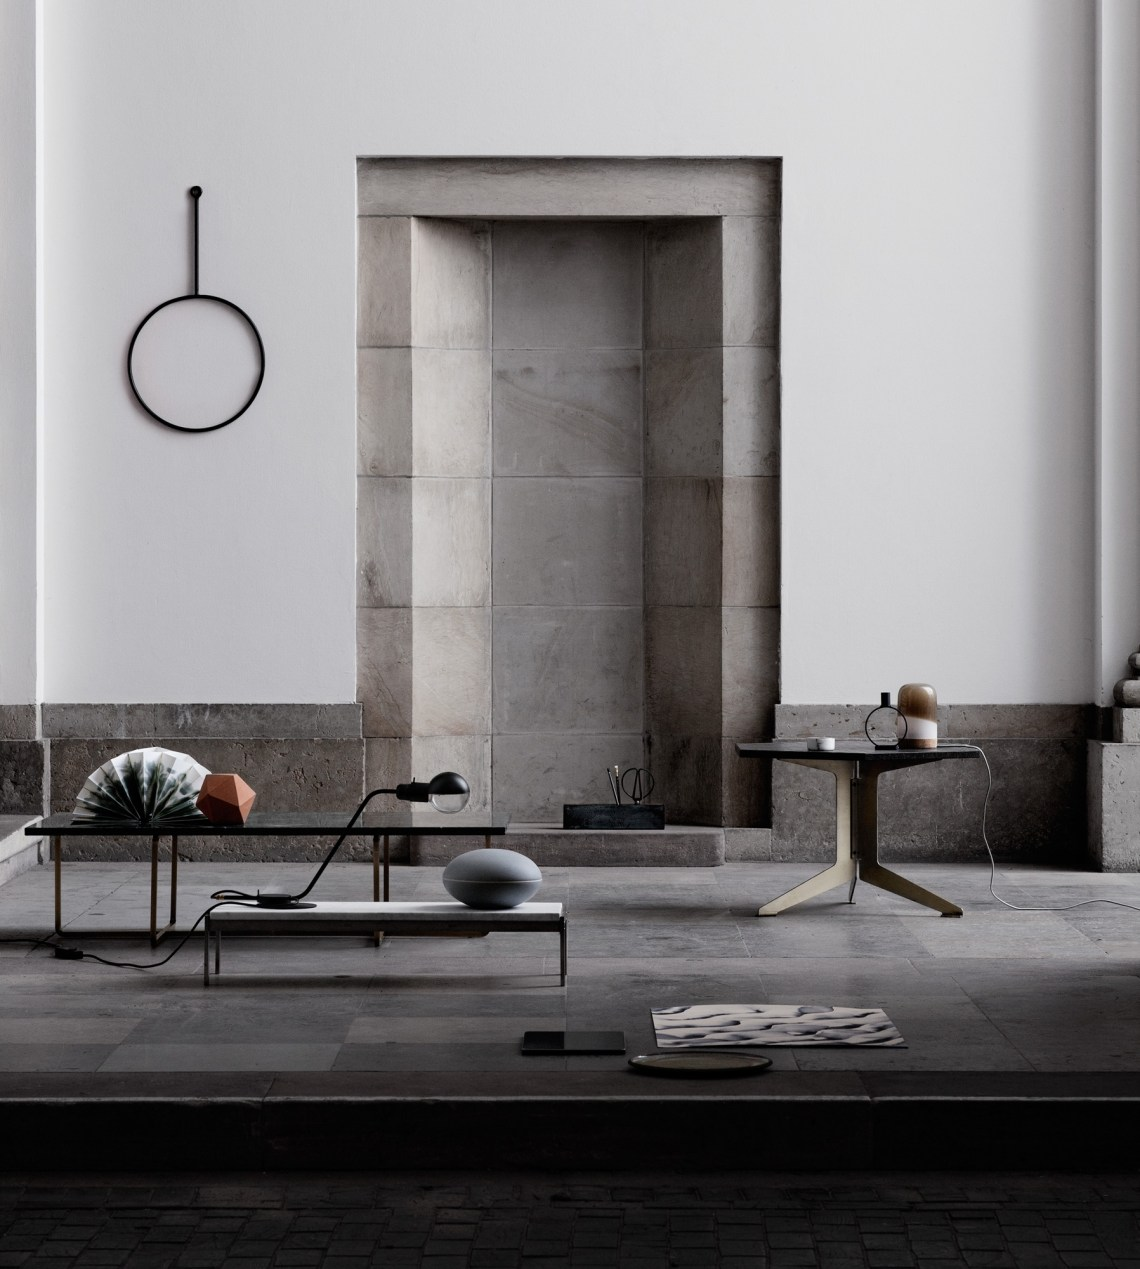 Styling mix with old and new - via cocolapinedesign.com